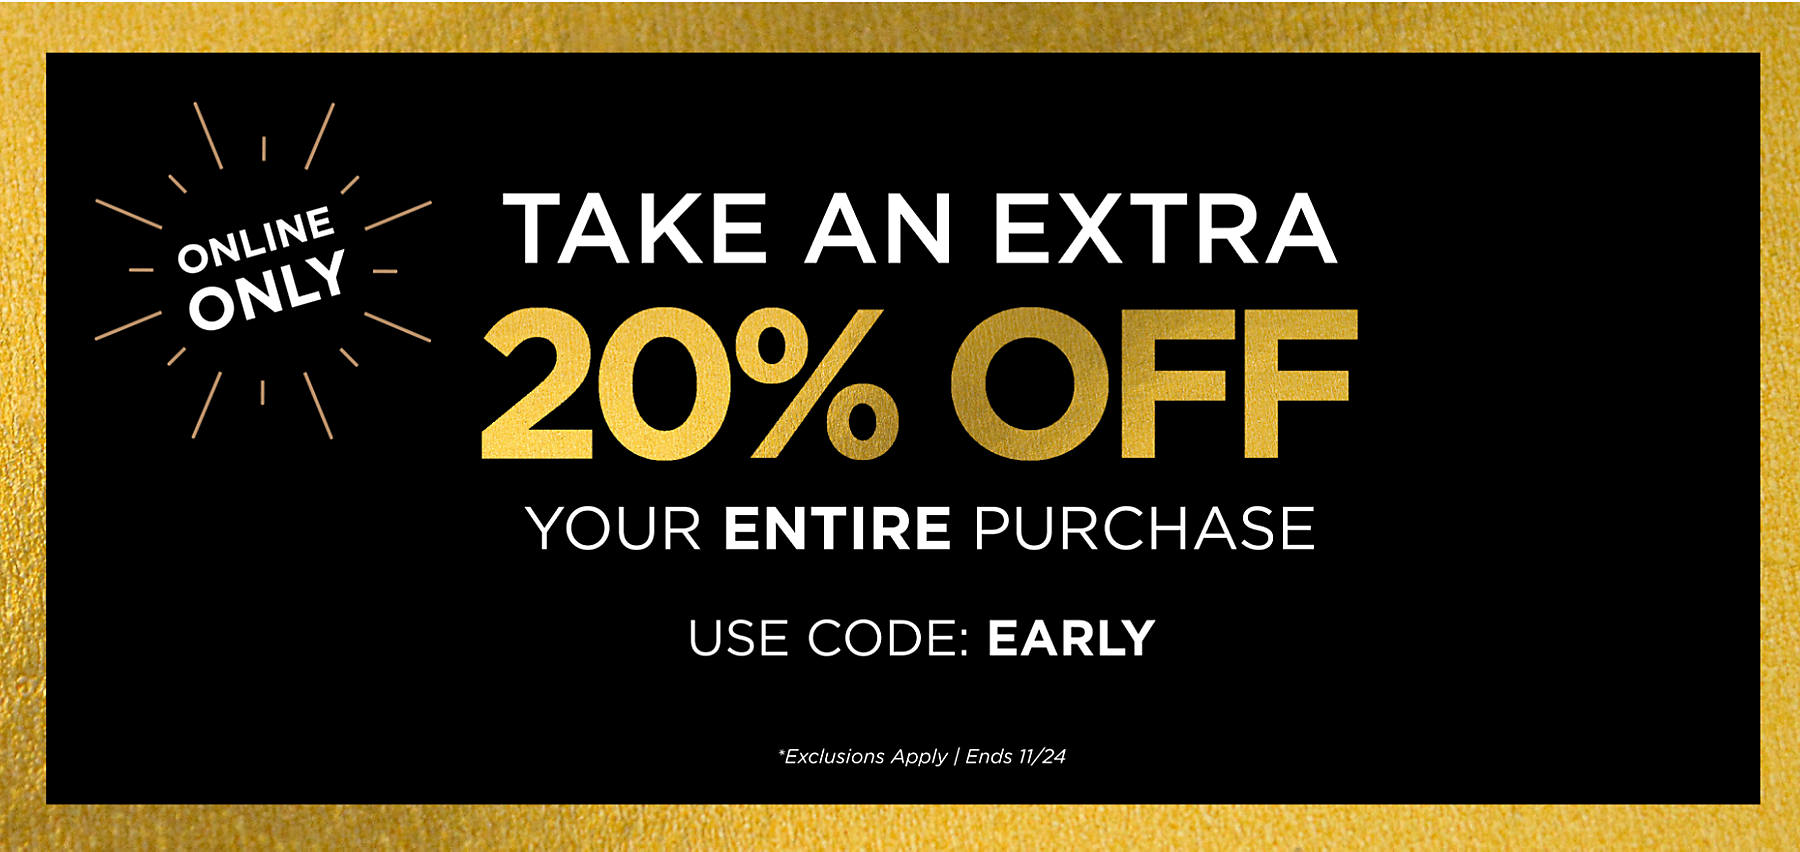 Online Only Take an Extra 20% Off Your Entire Purchase with code: EARLY Exclusions Apply Ends 11/24